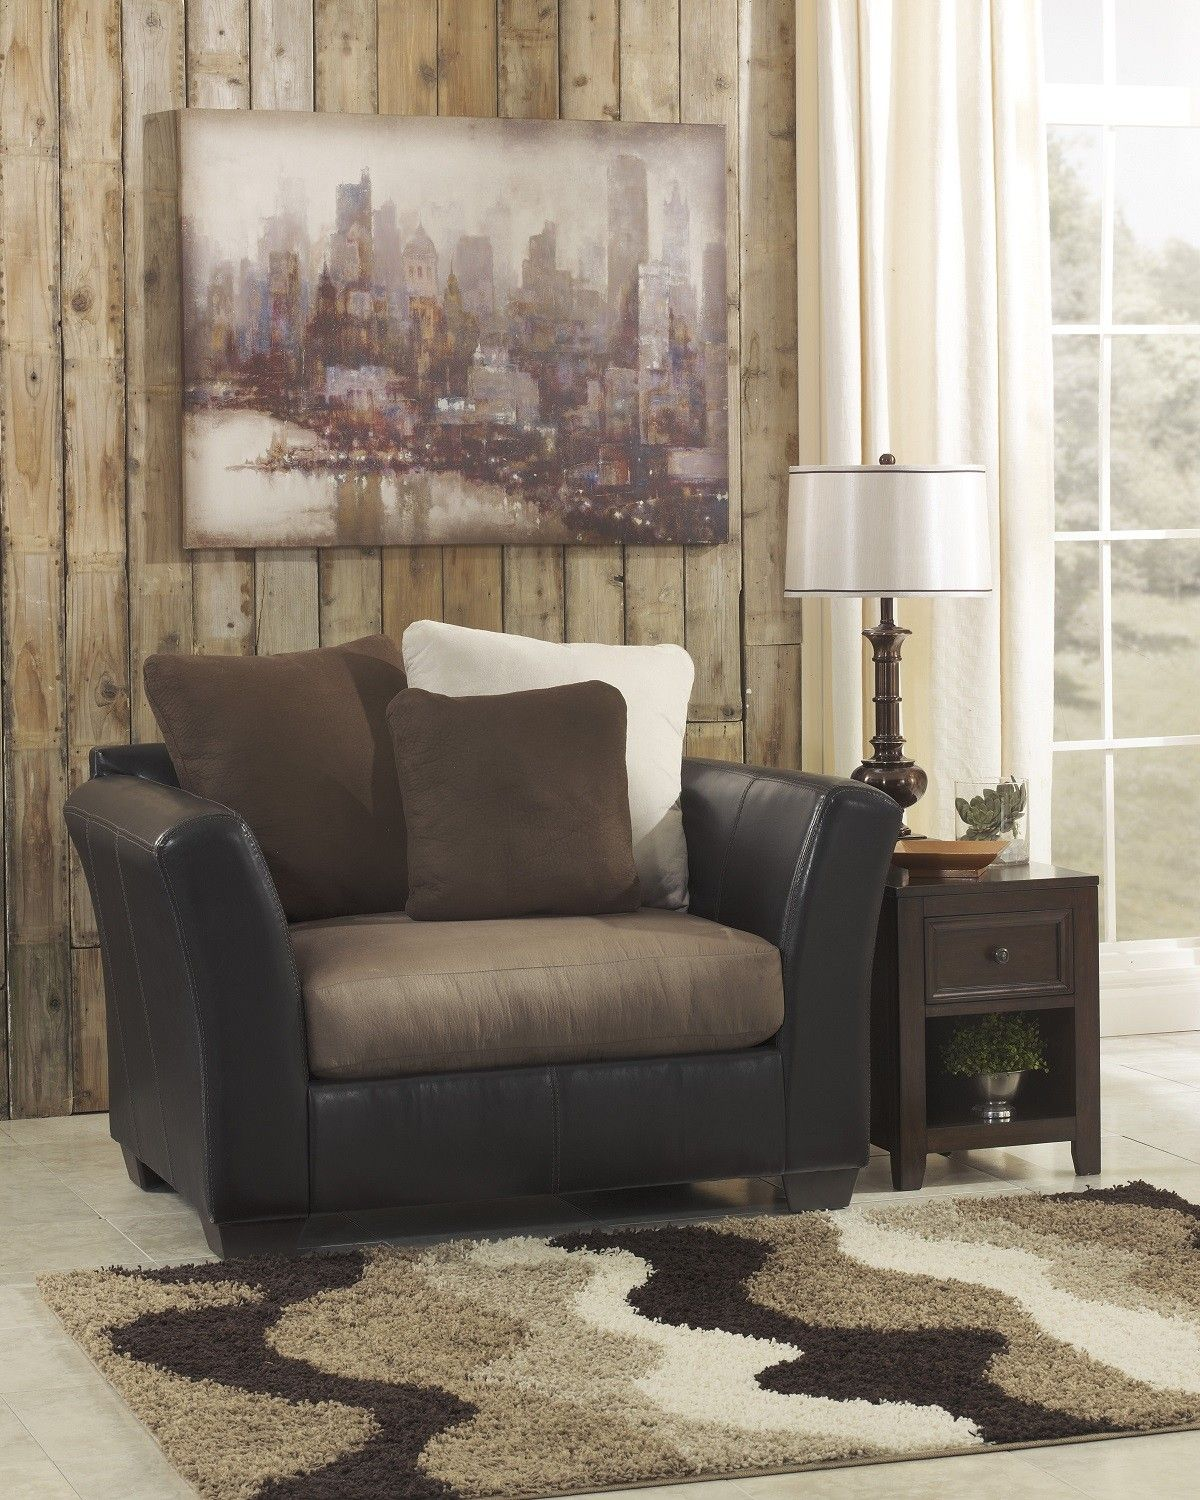 Masoli Mocha Oversized Chair Underpriced Furniture In Norcross Ga Chair And A Half Furniture Living Room Sets